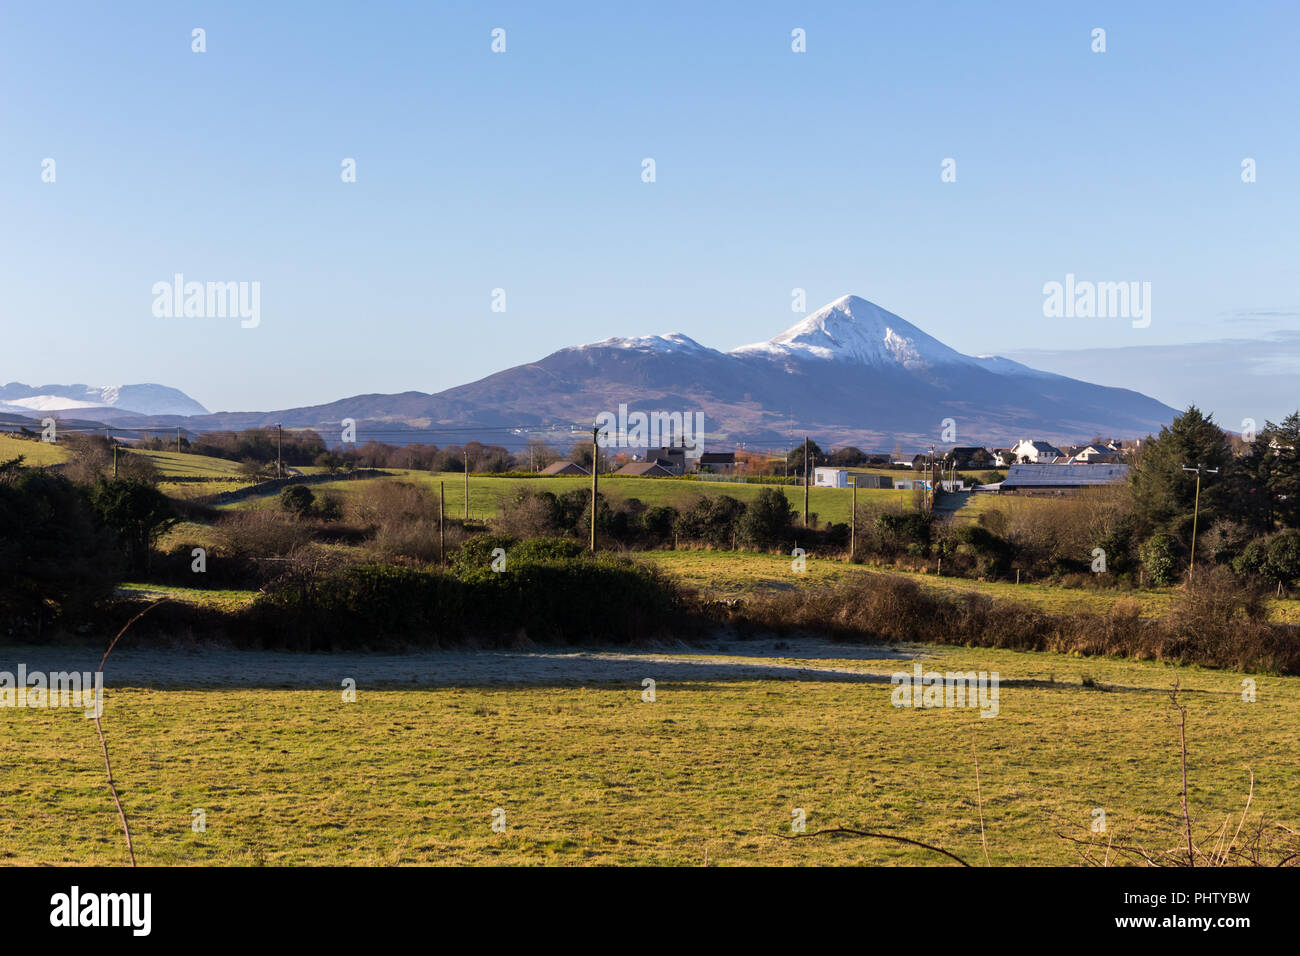 Snowcapped Croagh Patrick, Ireland's Holy Mountain, sen in the distance over green fields. Westport, County Mayo, Ireland. - Stock Image